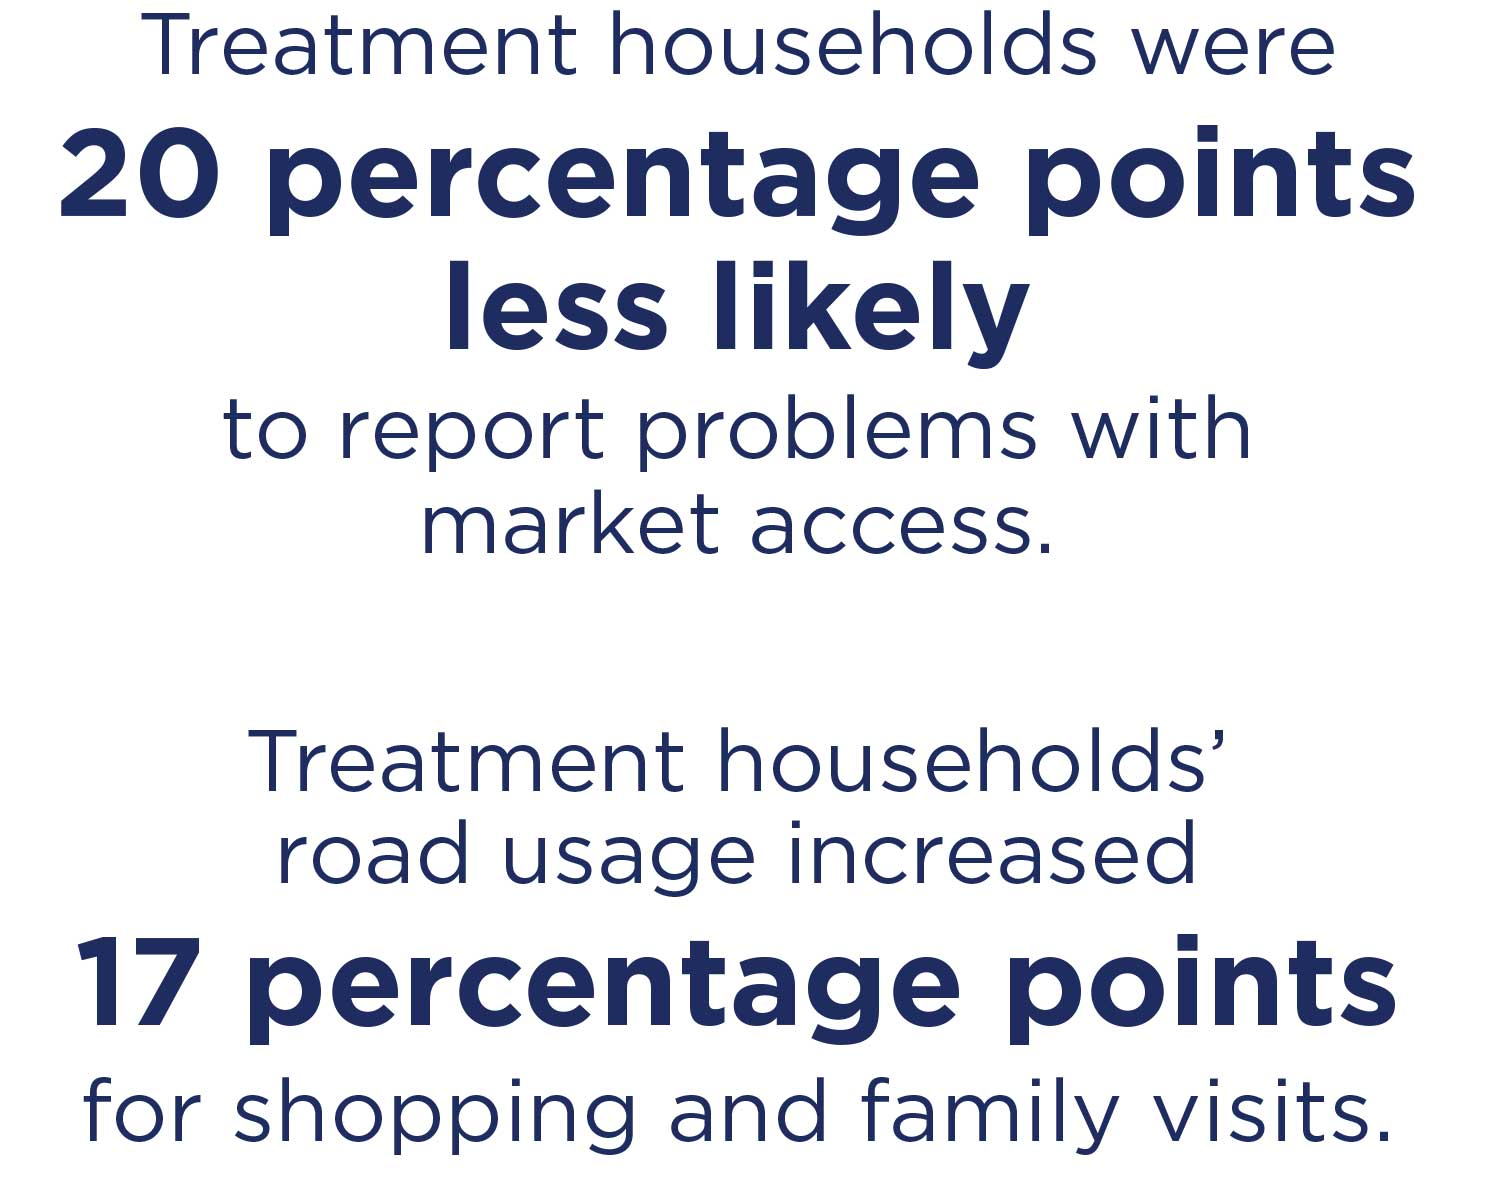 Treatment households were 20 percentage points less likely to report problems with market access and their road usage increased 17 percentage points for shopping and family visits.